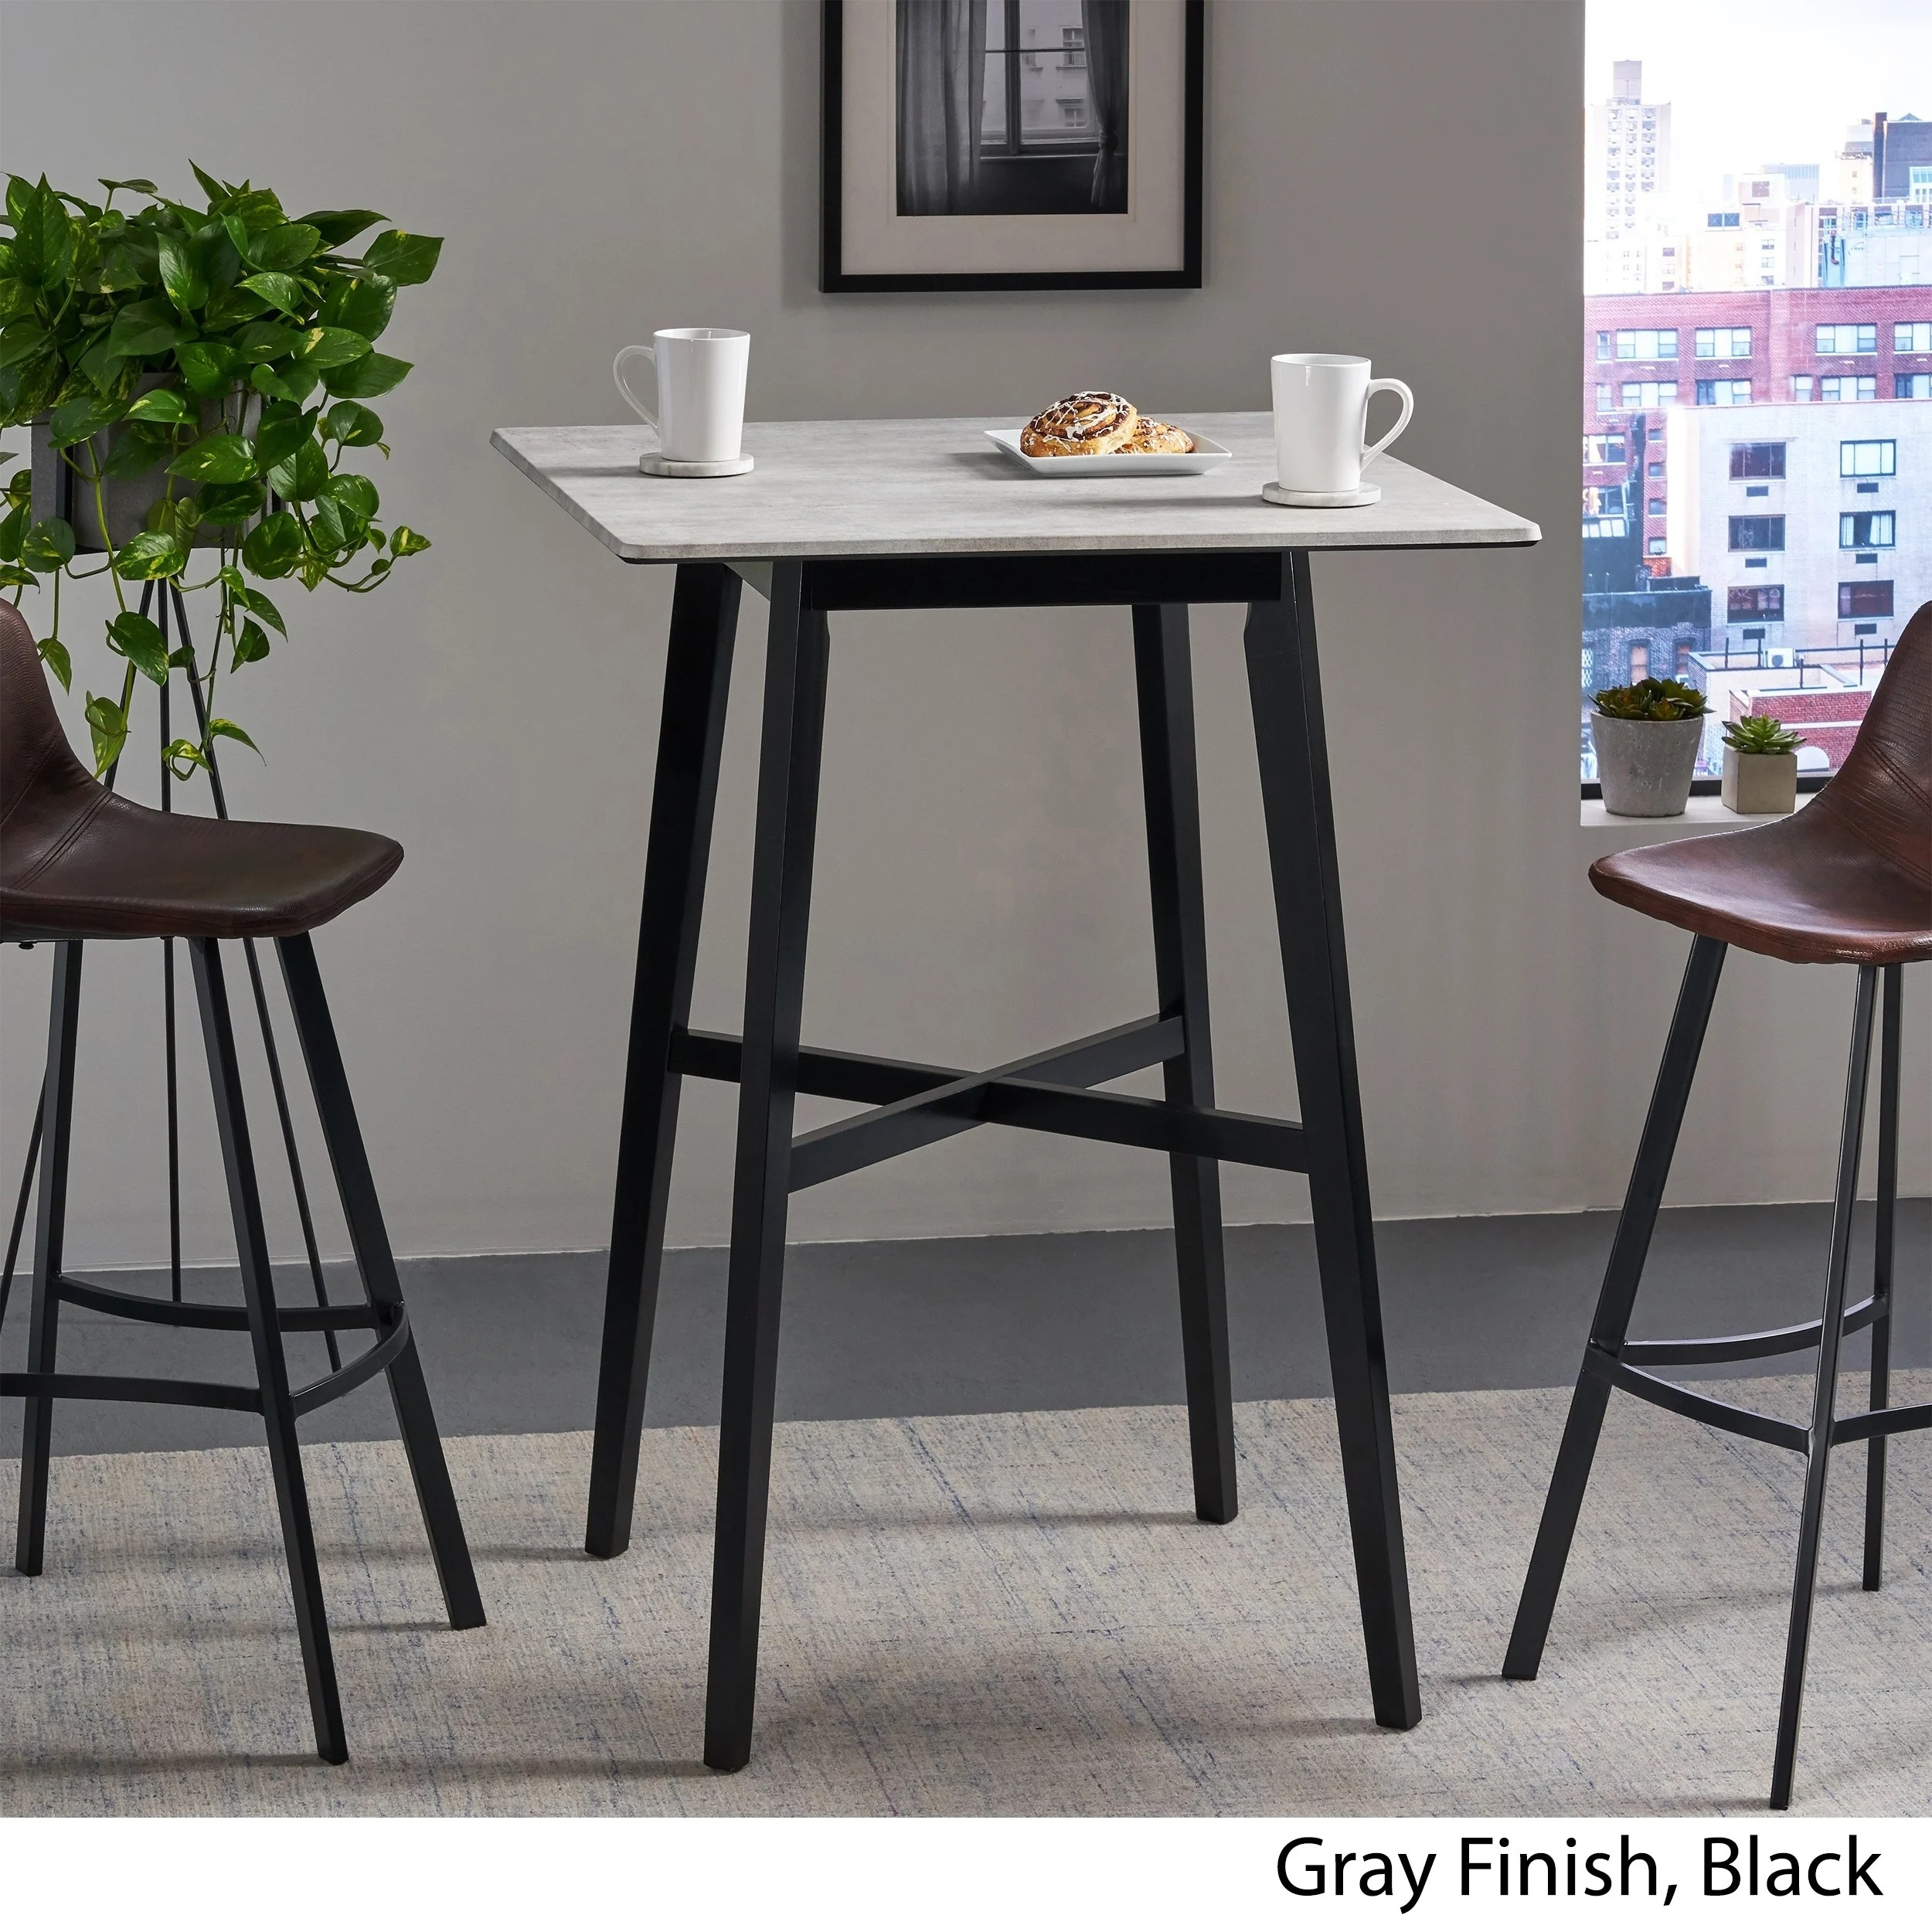 Kenilworth Modern Resin Square Bar Table By Christopher Knight Home Overstock 27414672